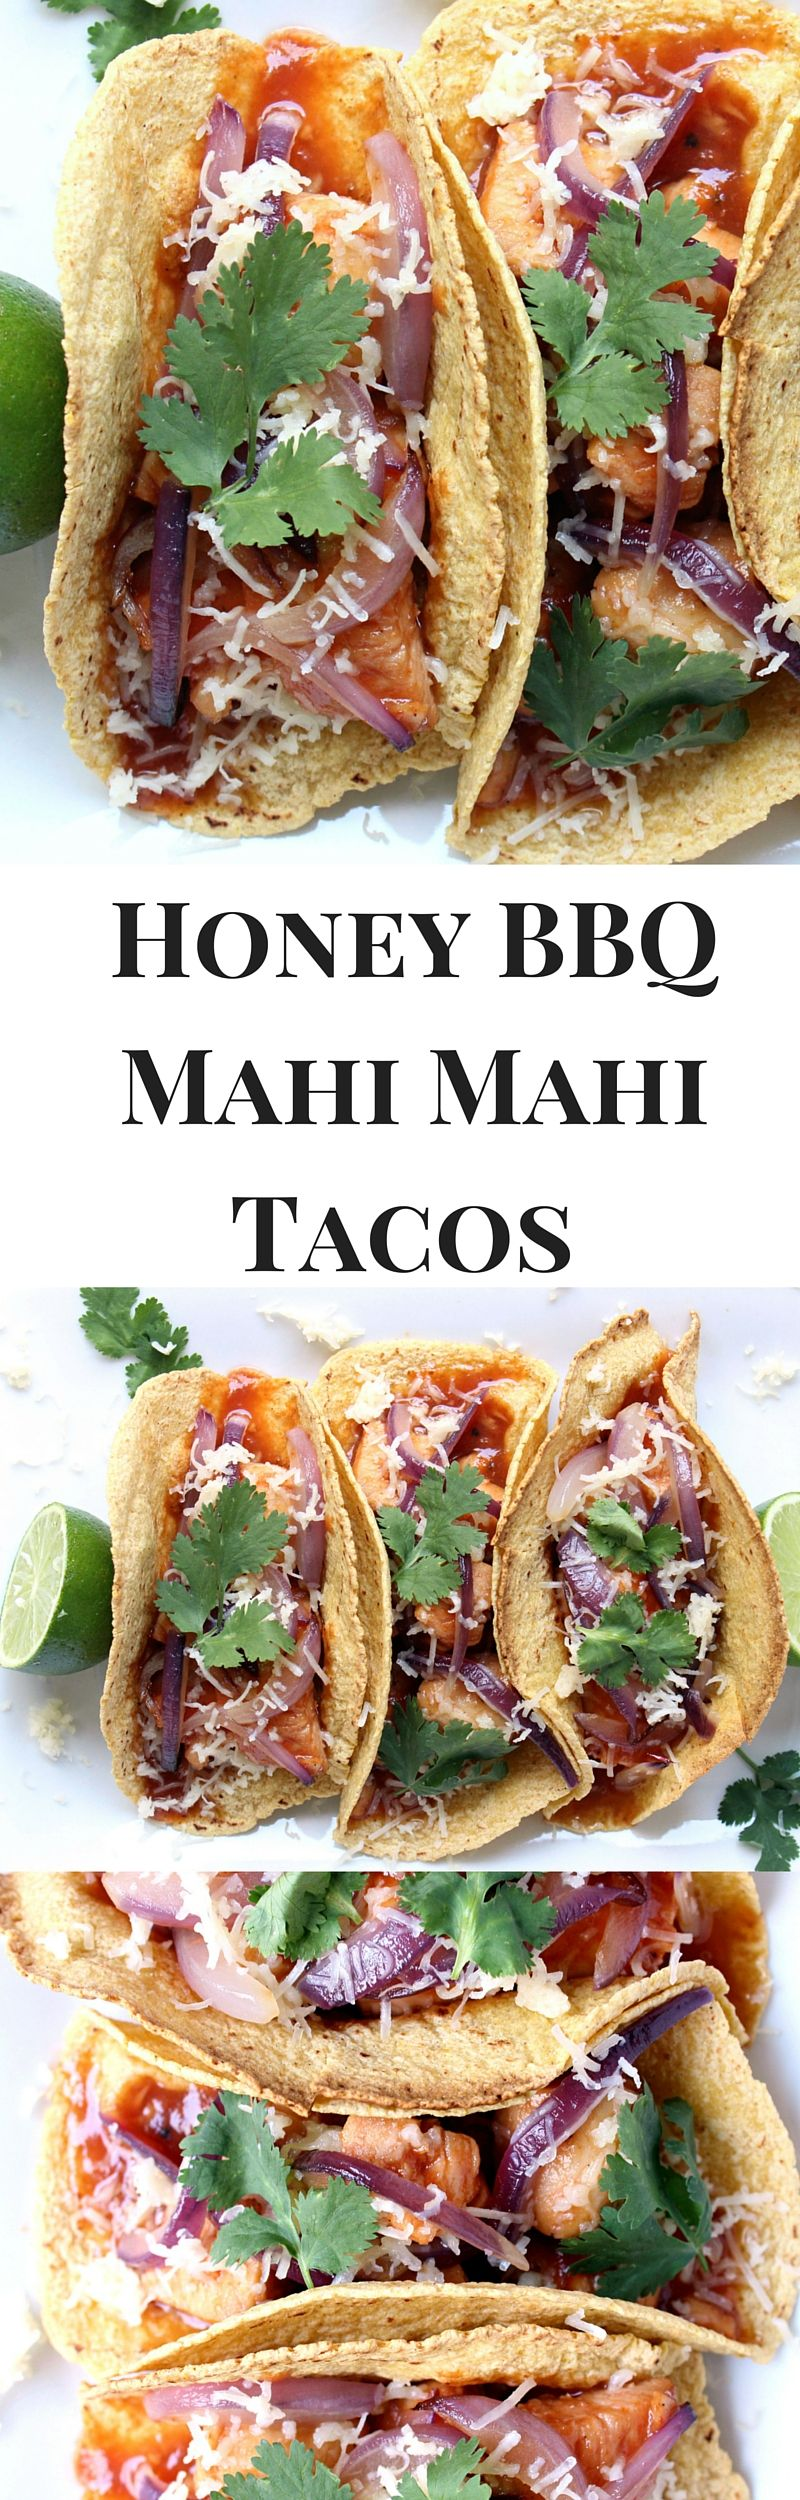 Honey BBQ Mahi Mahi Tacos w/ Red Onion & Crumbled Cheddar - ready to devour in just 30 minutes!! simple + healthy